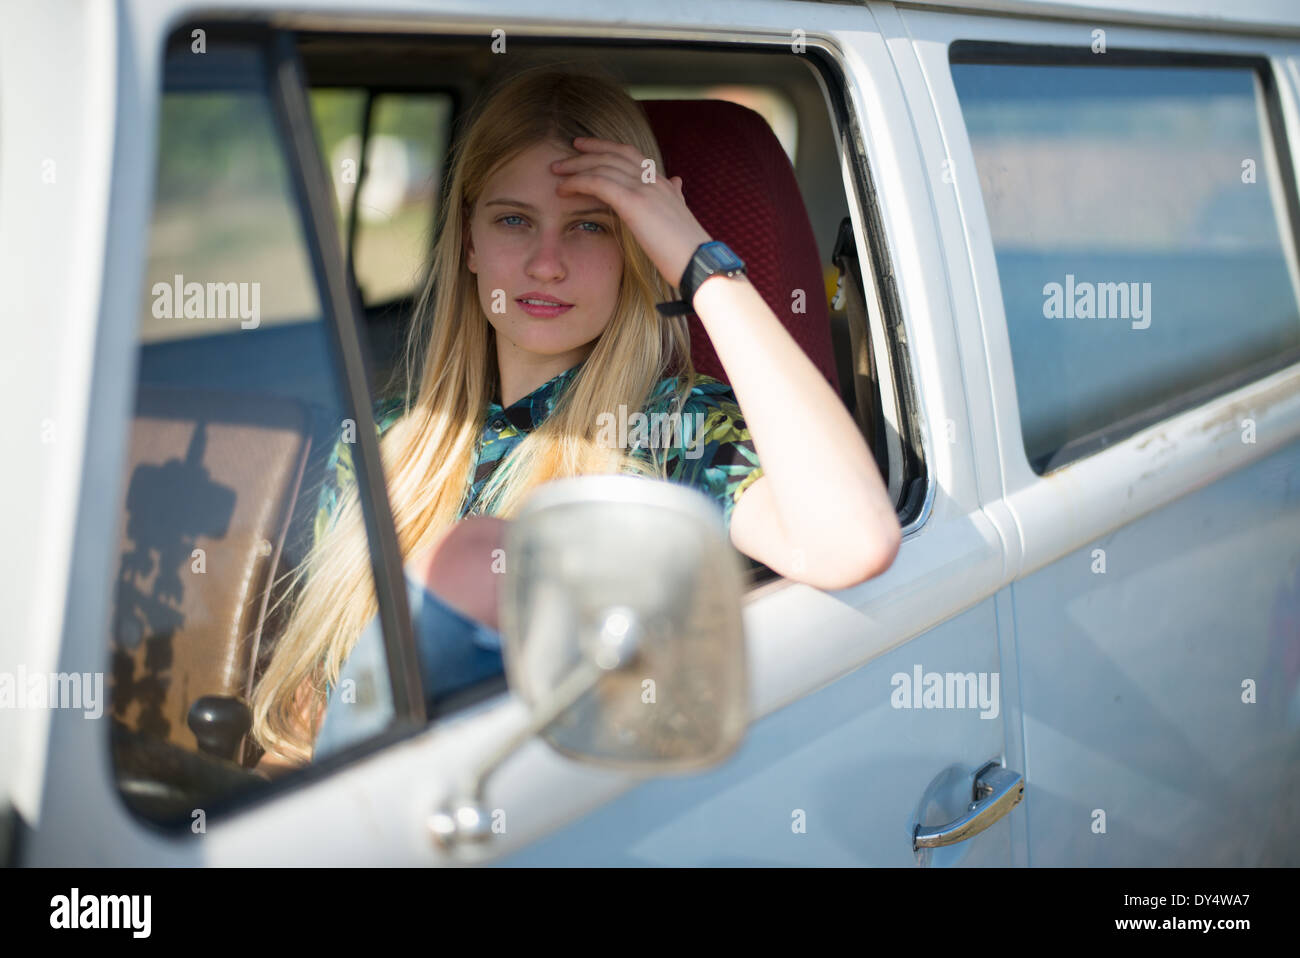 Portrait of young woman in campervan - Stock Image